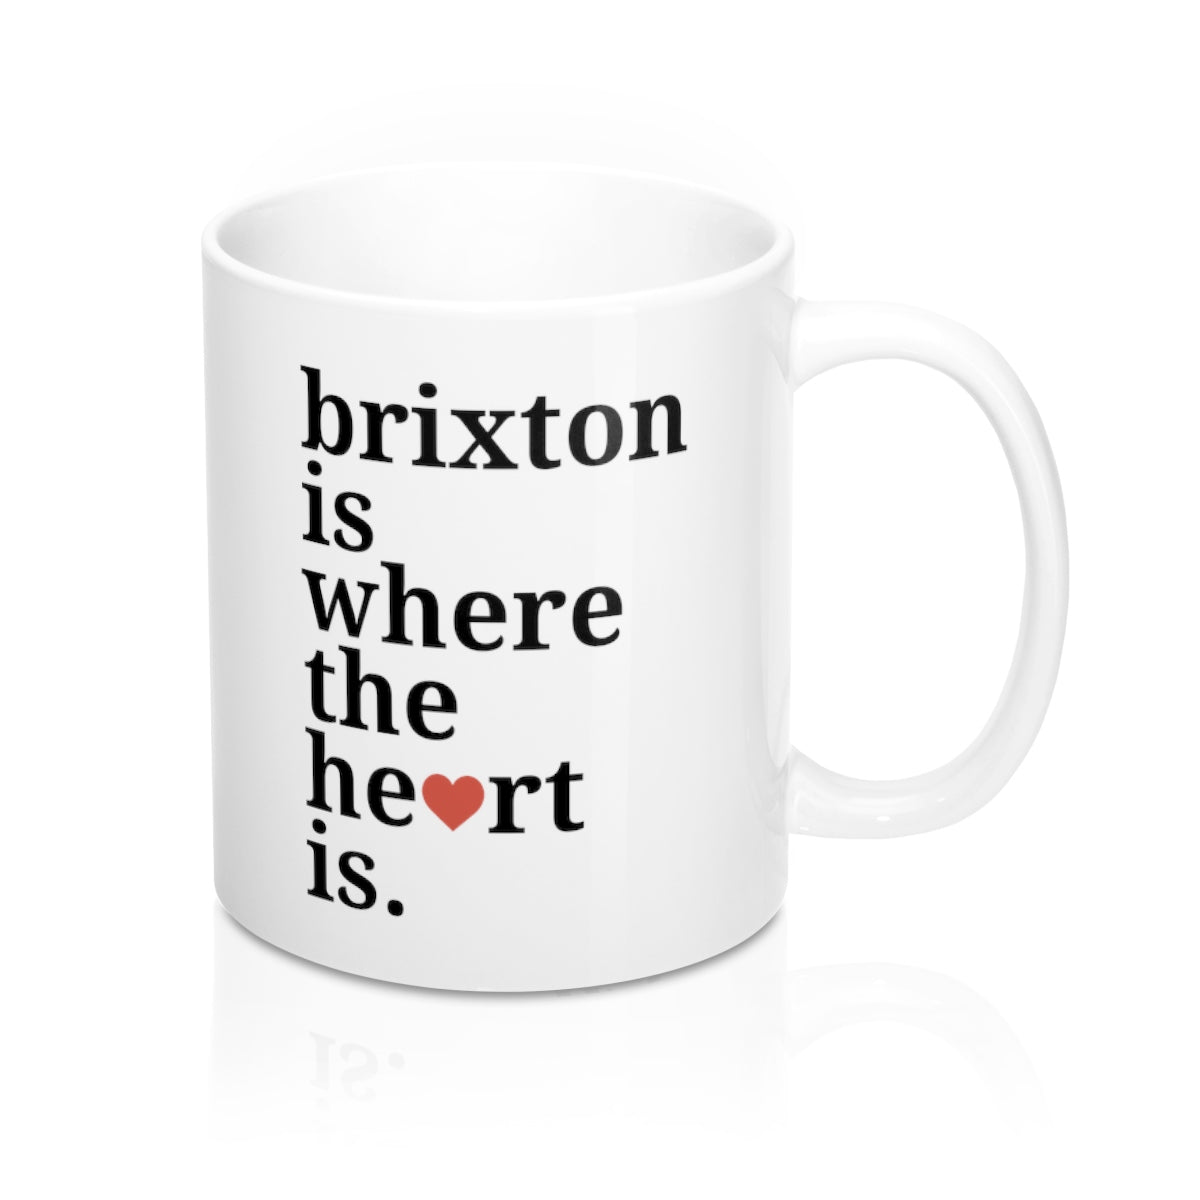 Brixton Is Where The Heart Is Mug